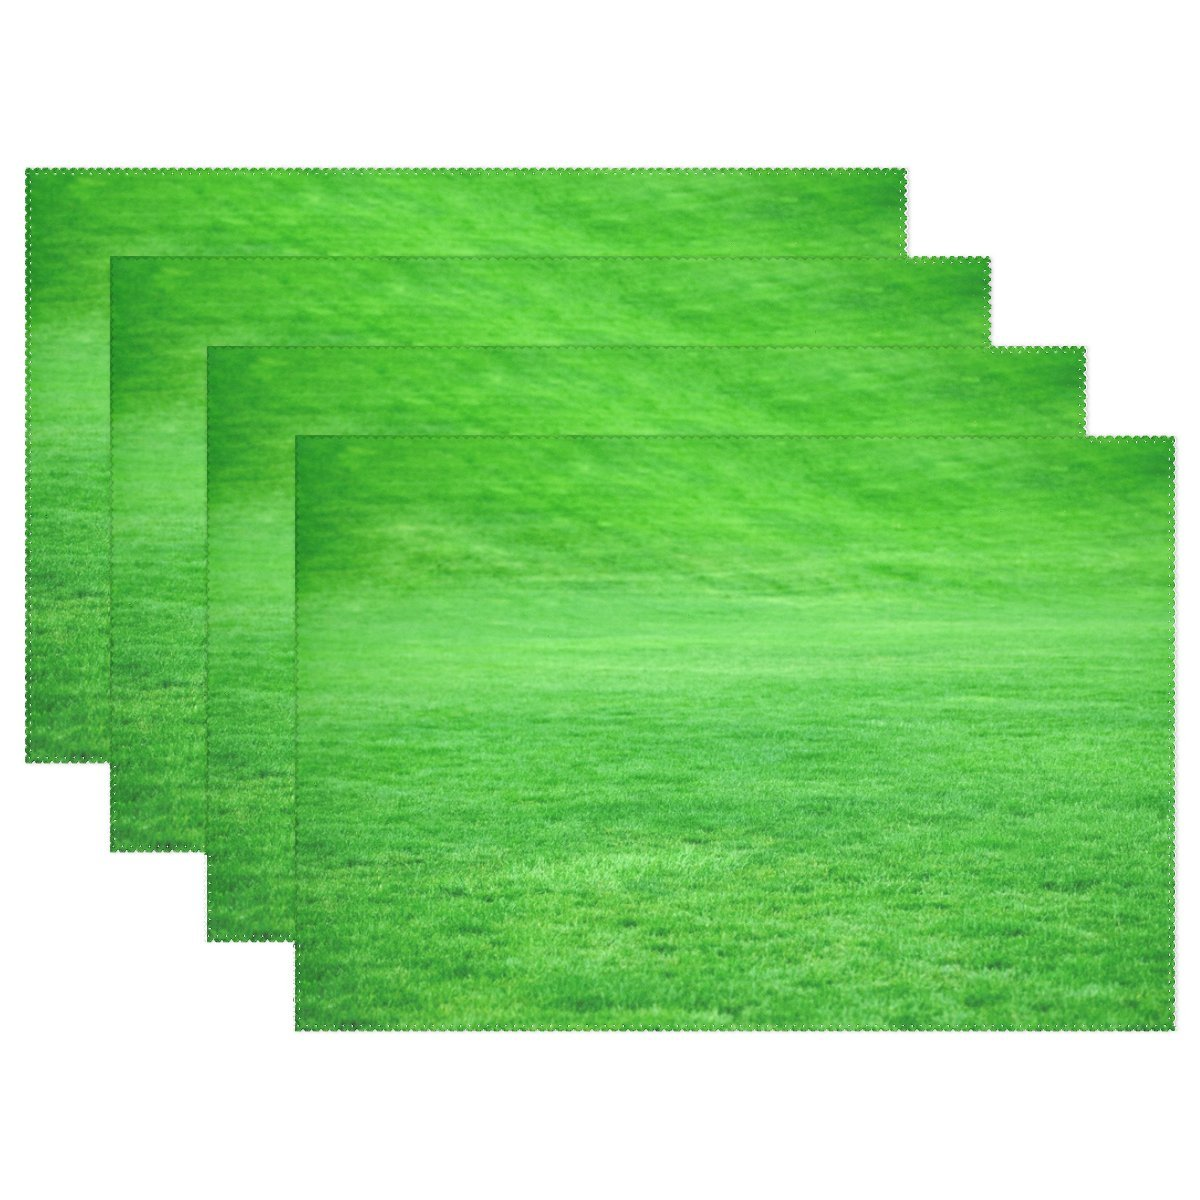 RH Studio Grass Lawn Green耐熱テーブルPlacemats Set of 4 Stain Resistantテーブルマット洗濯可能食べマットホームディナー装飾   B07D8Y4ZB2